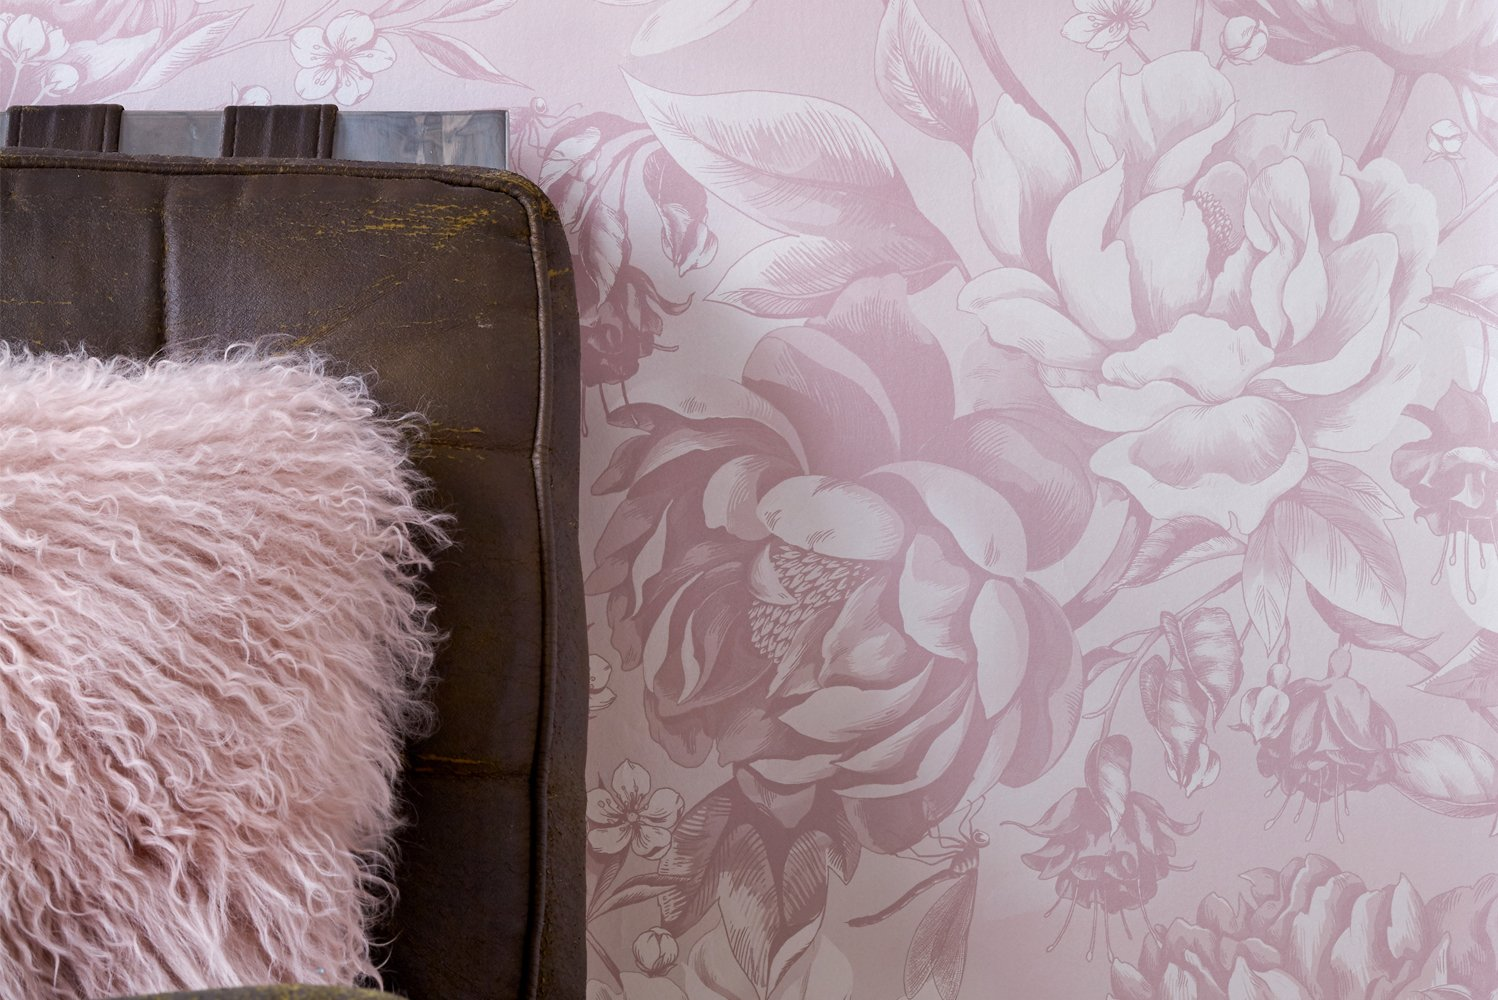 The wallpapers have hand-sketched and digitally-colored peony blooms arranged across planes.